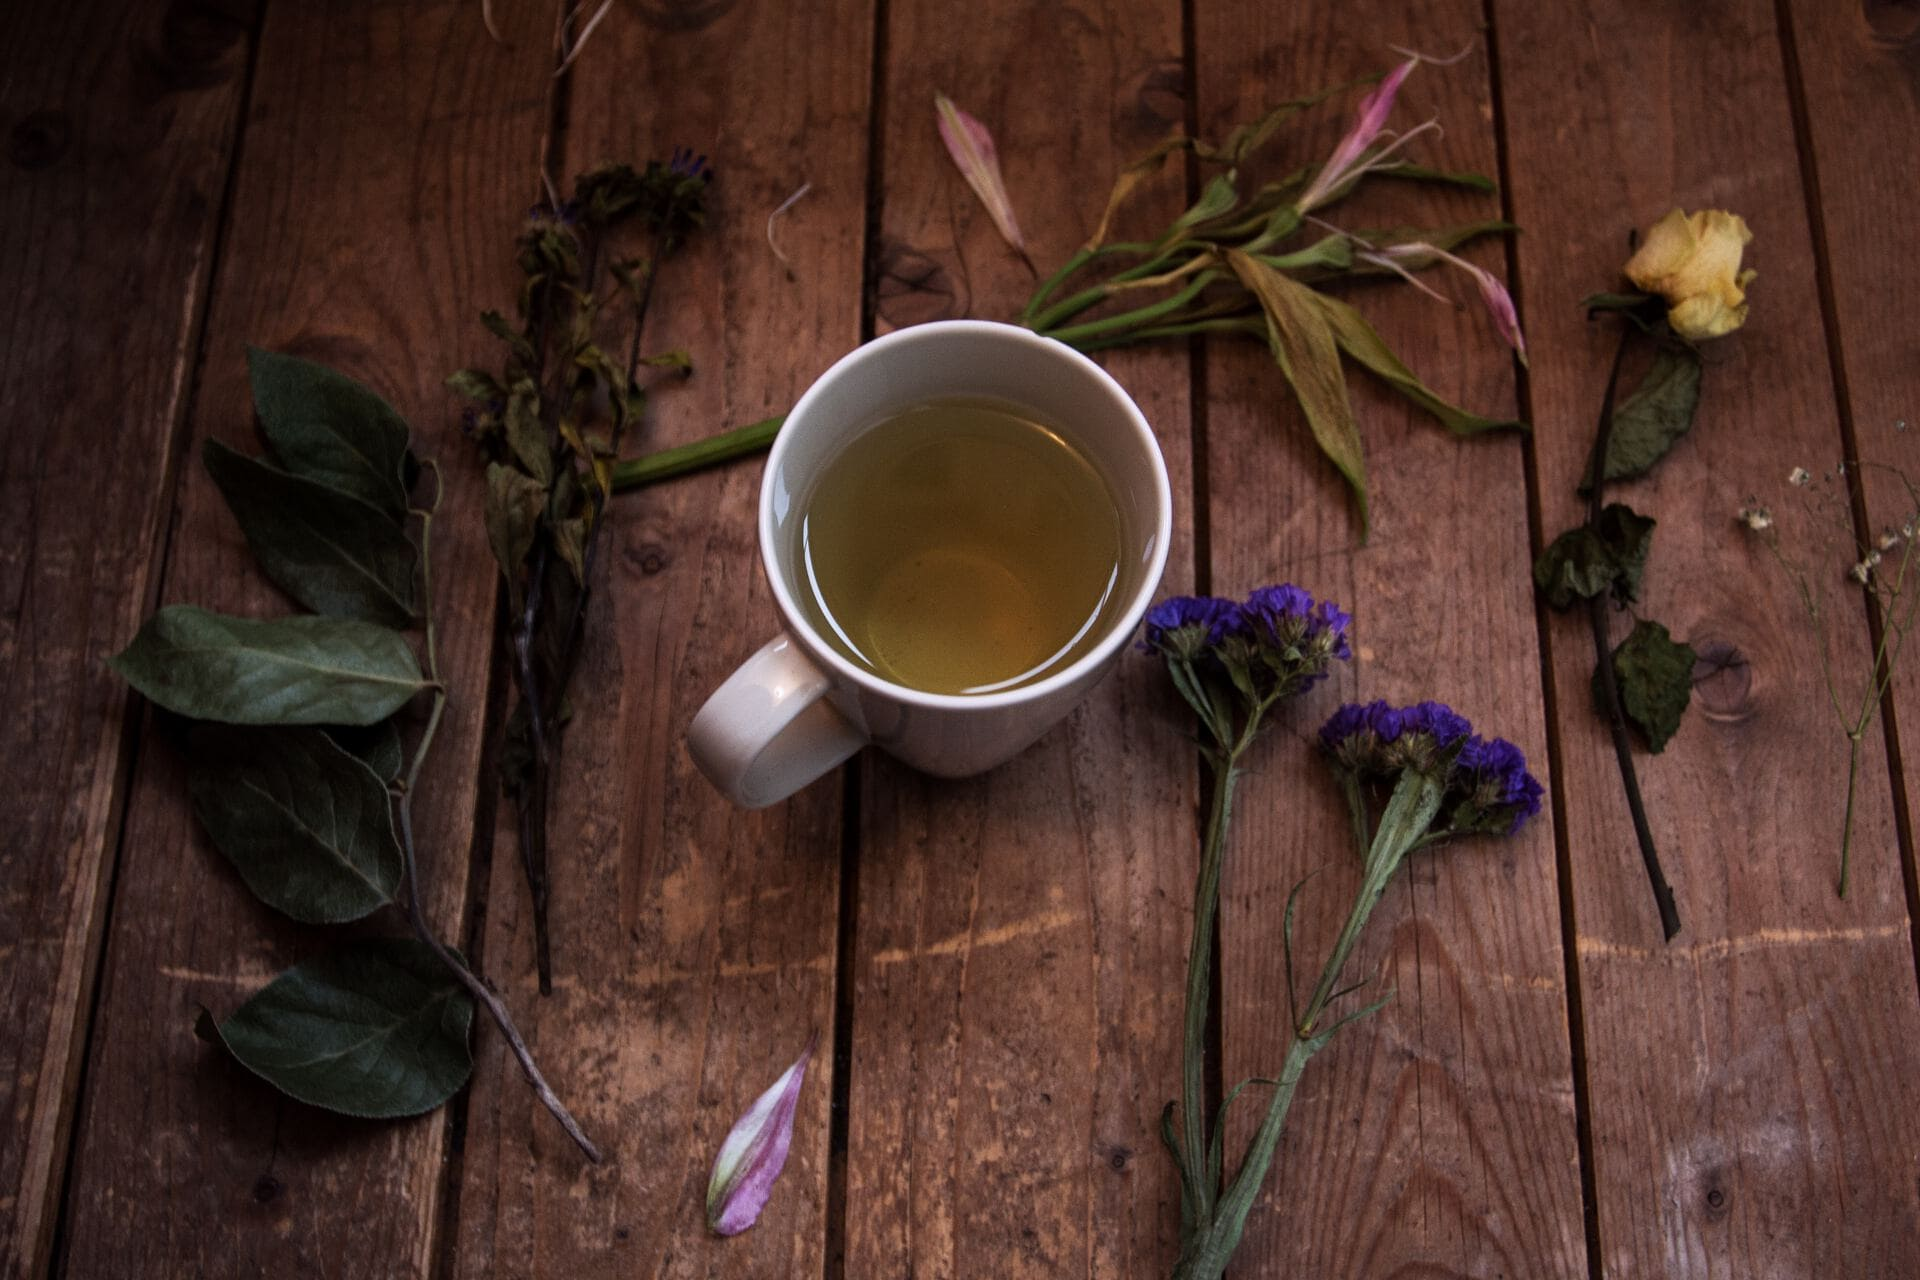 &Sister collaborator & herbal-healing wisdom-keeper Kitty Campion shares her detox tea recipe